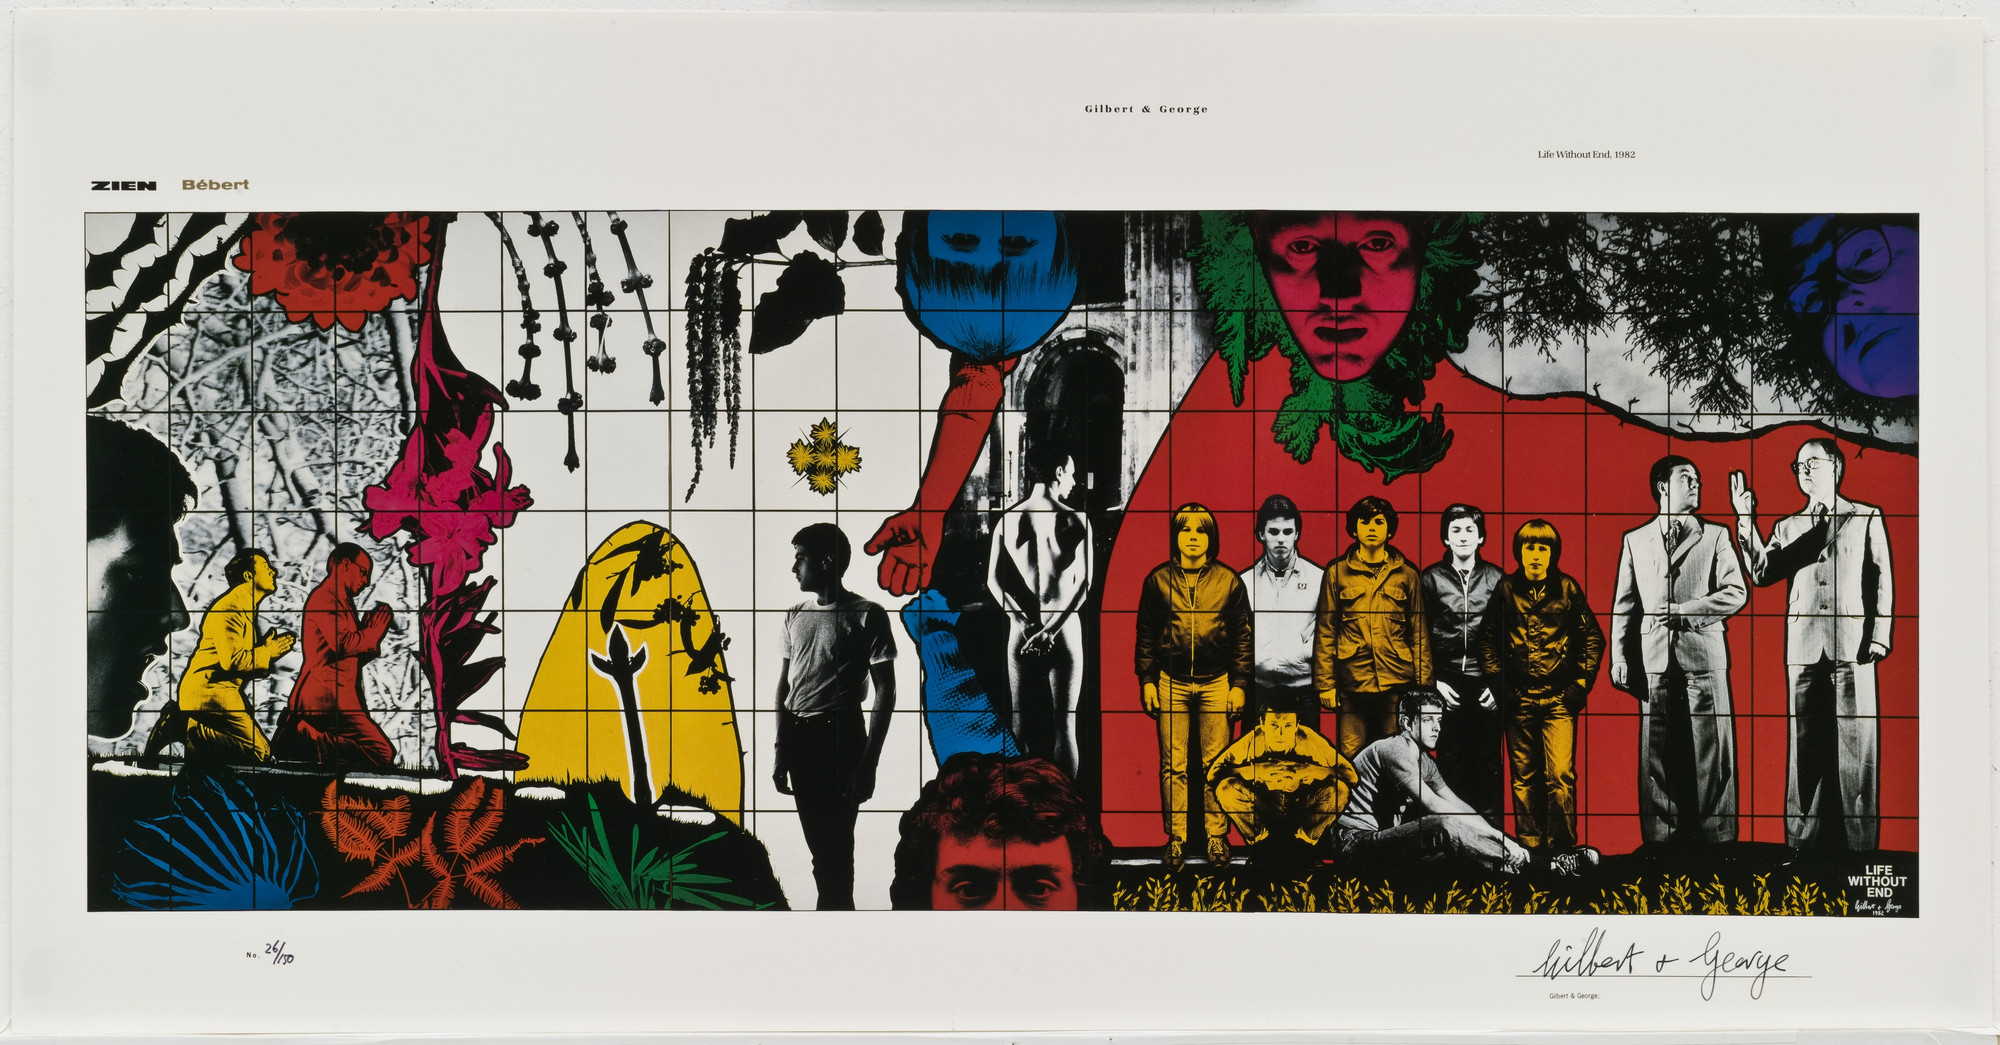 Gilbert & George, Gilbert Proesch, George Passmore. Life Without End. (1982)